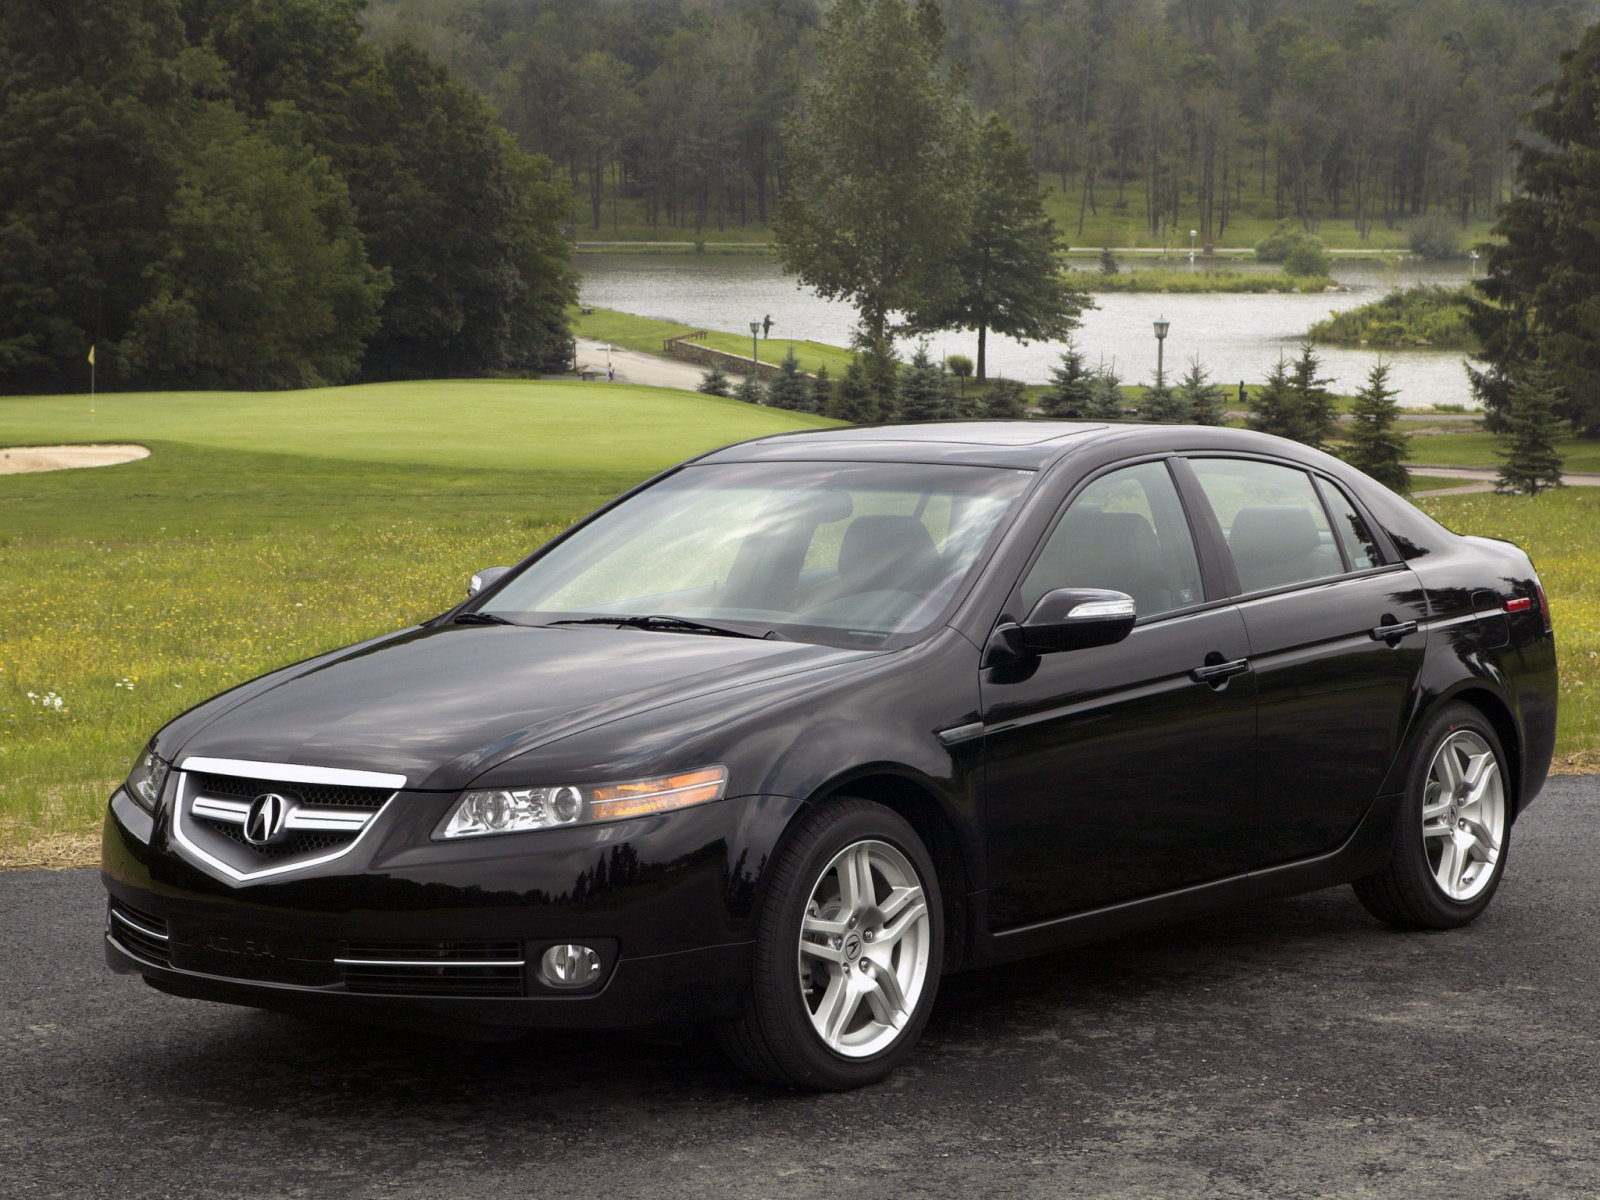 2006 Acura TL Type S related infomation,specifications - WeiLi Automotive Network